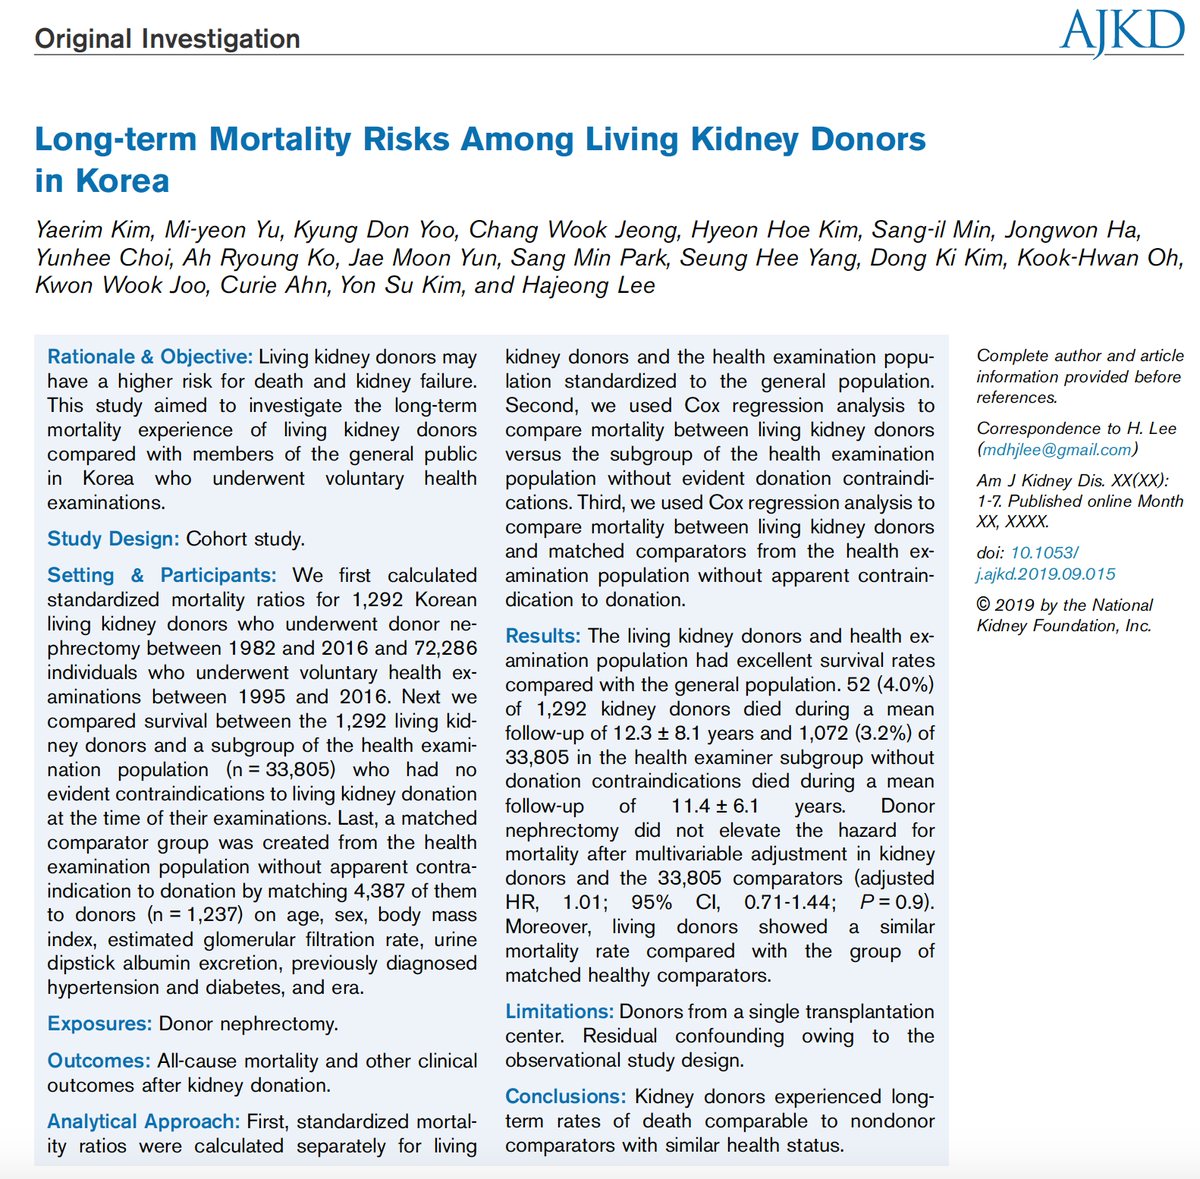 Long-term Mortality Risks Among Living Kidney Donors in Korea https://buff.ly/31rYw8Z  Conclusion: Kidney donors experienced long-term rates of death comparable to nondonor comparators with similar health status   #kidneydonation #kidneytransplantpic.twitter.com/R5AqqHX8ZR